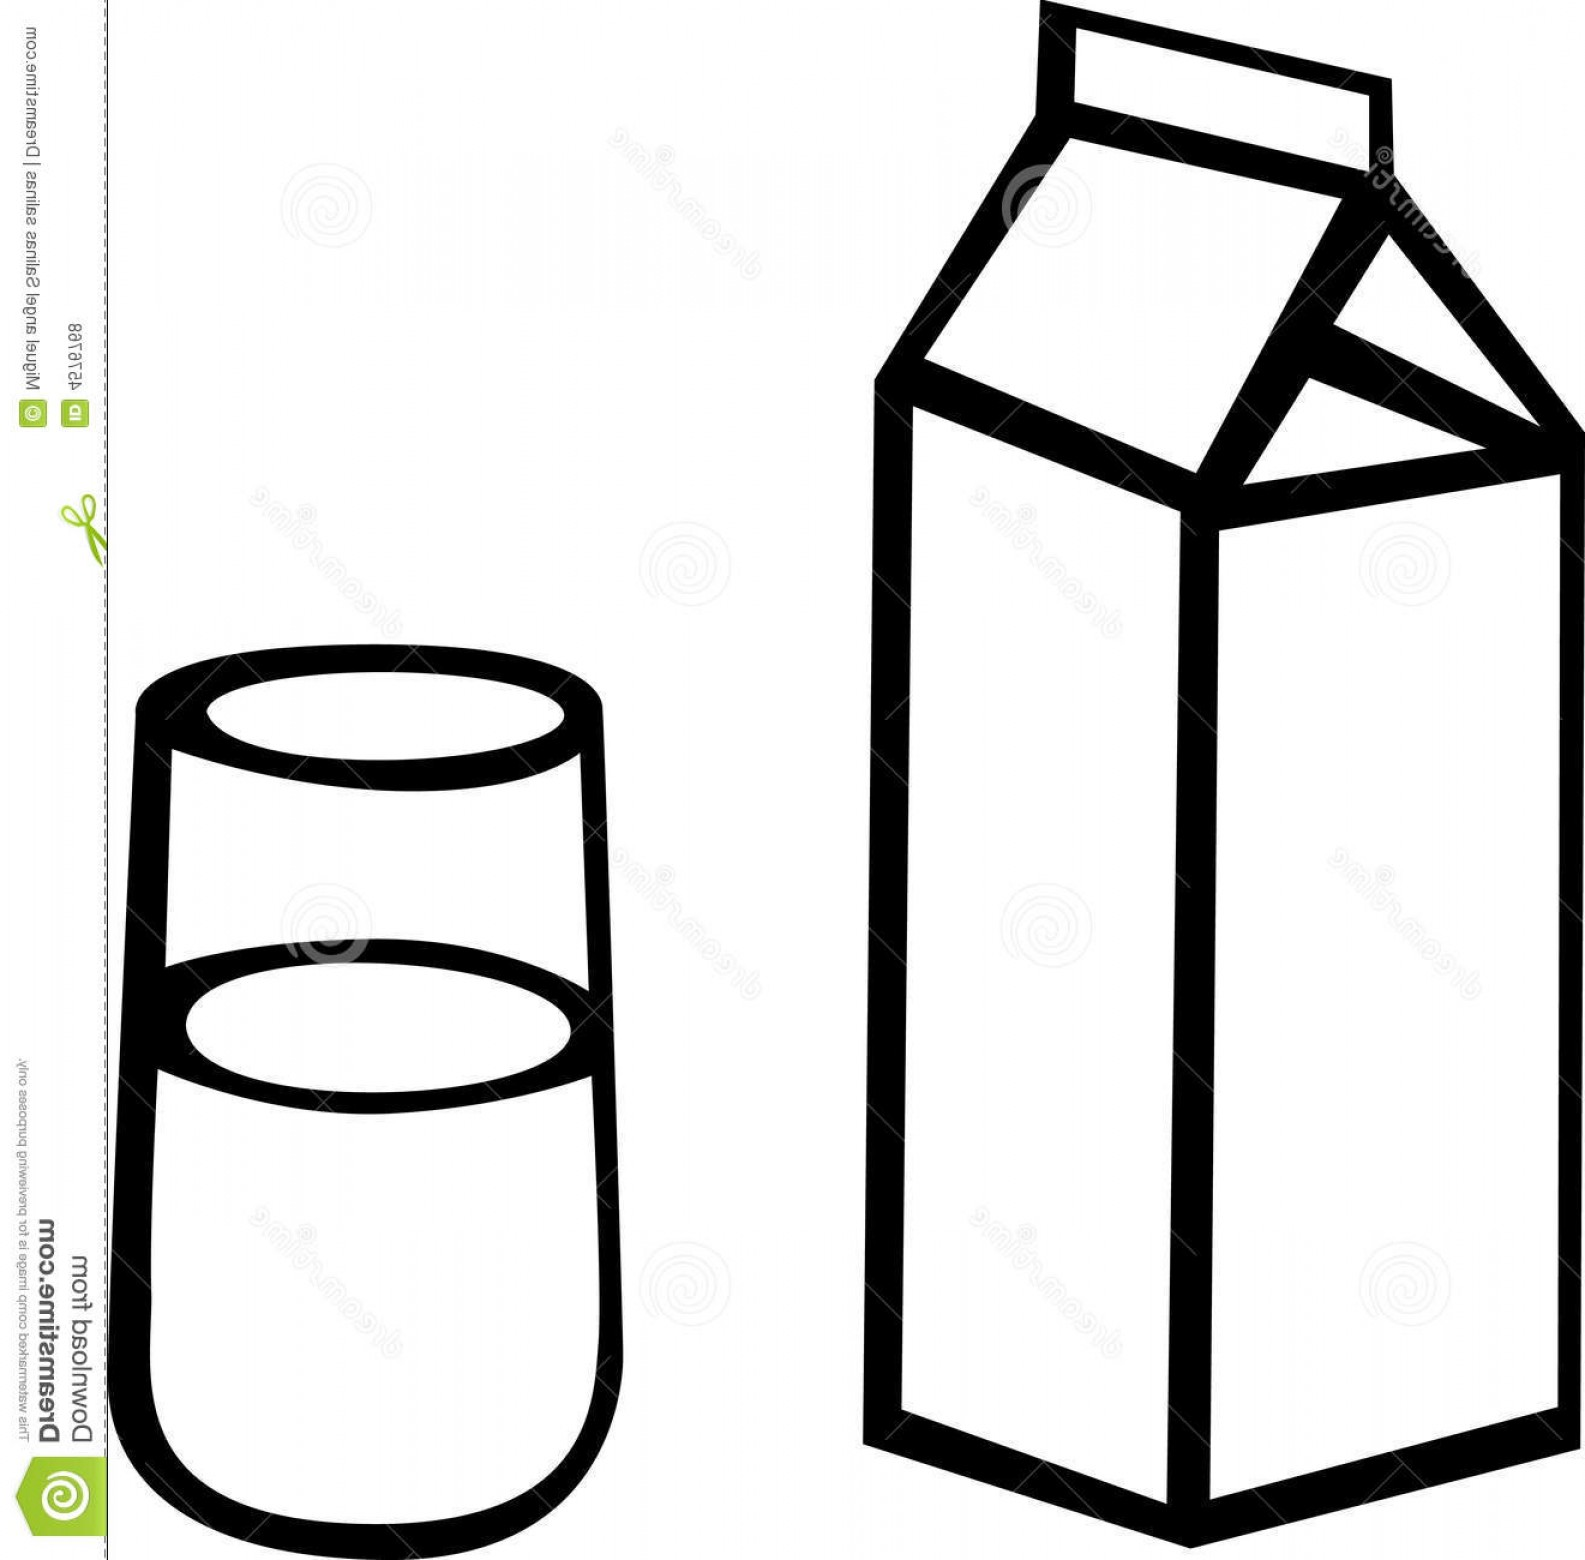 1585x1560 Milk Carton Clipart Illustration